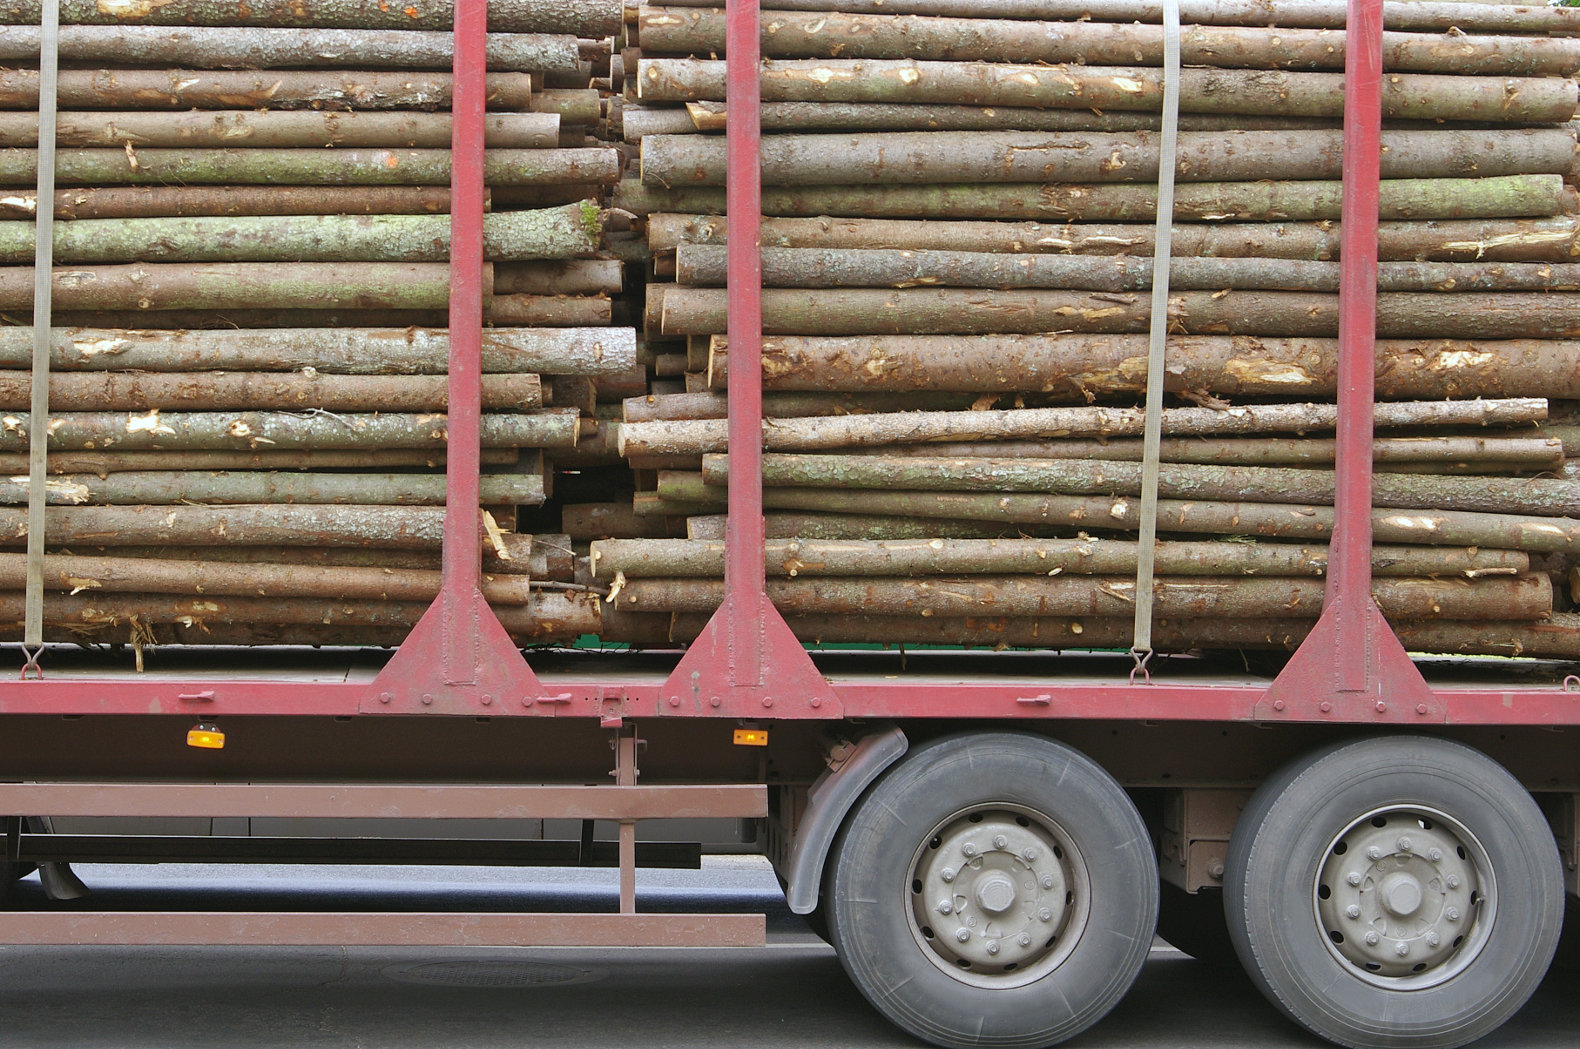 The UK is building the world's largest biomass plant - and